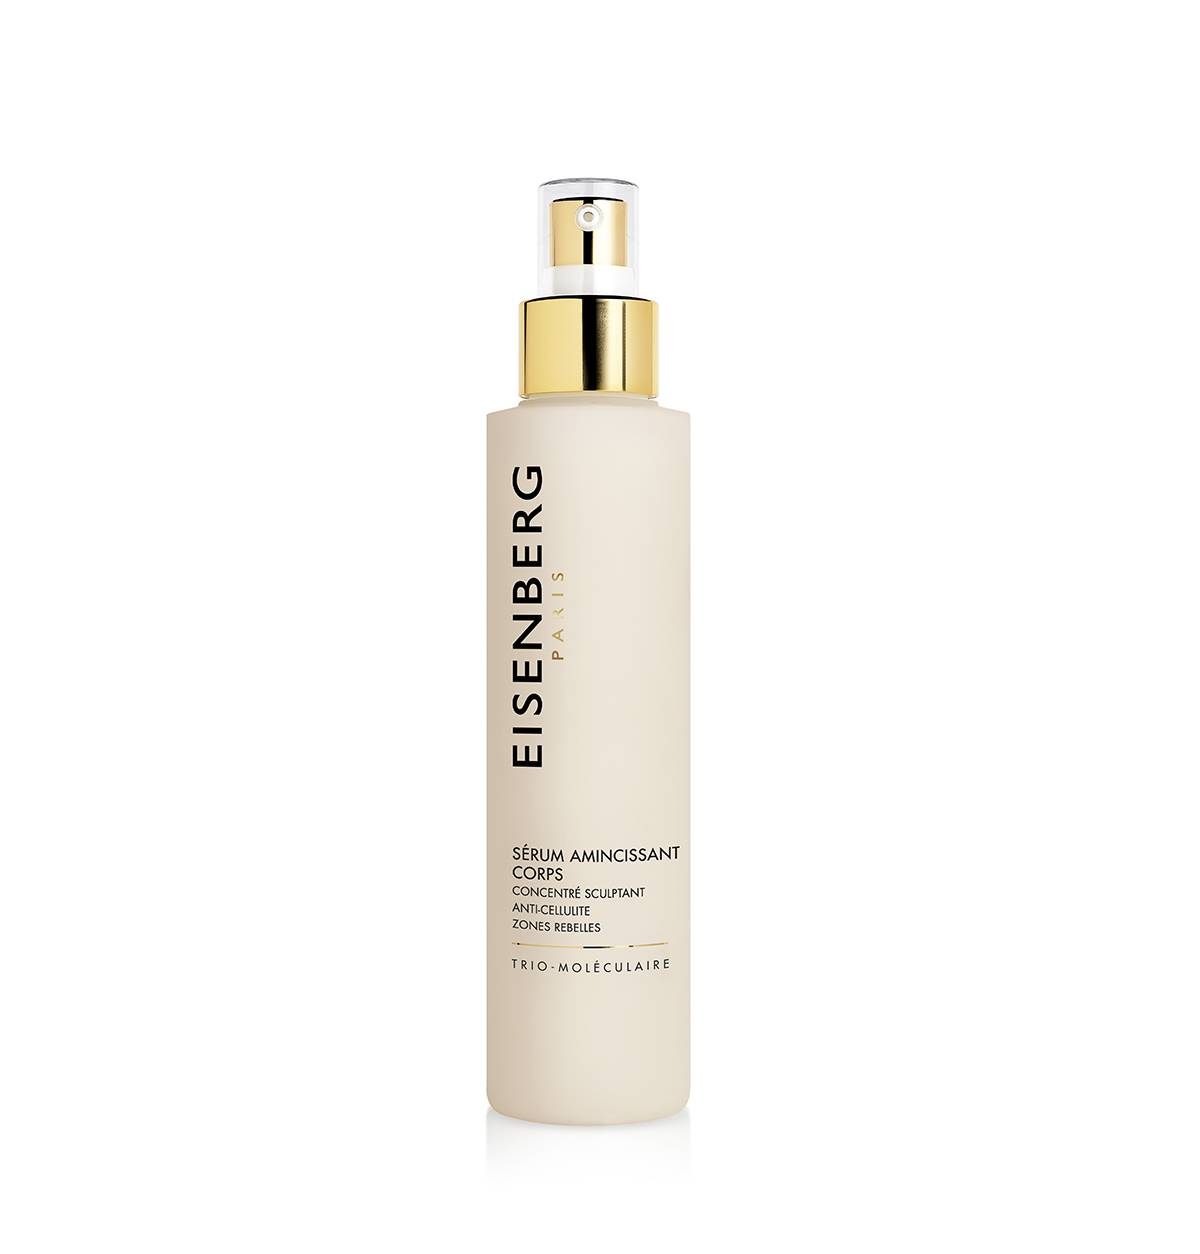 Body Refining Serum, Eisenberg